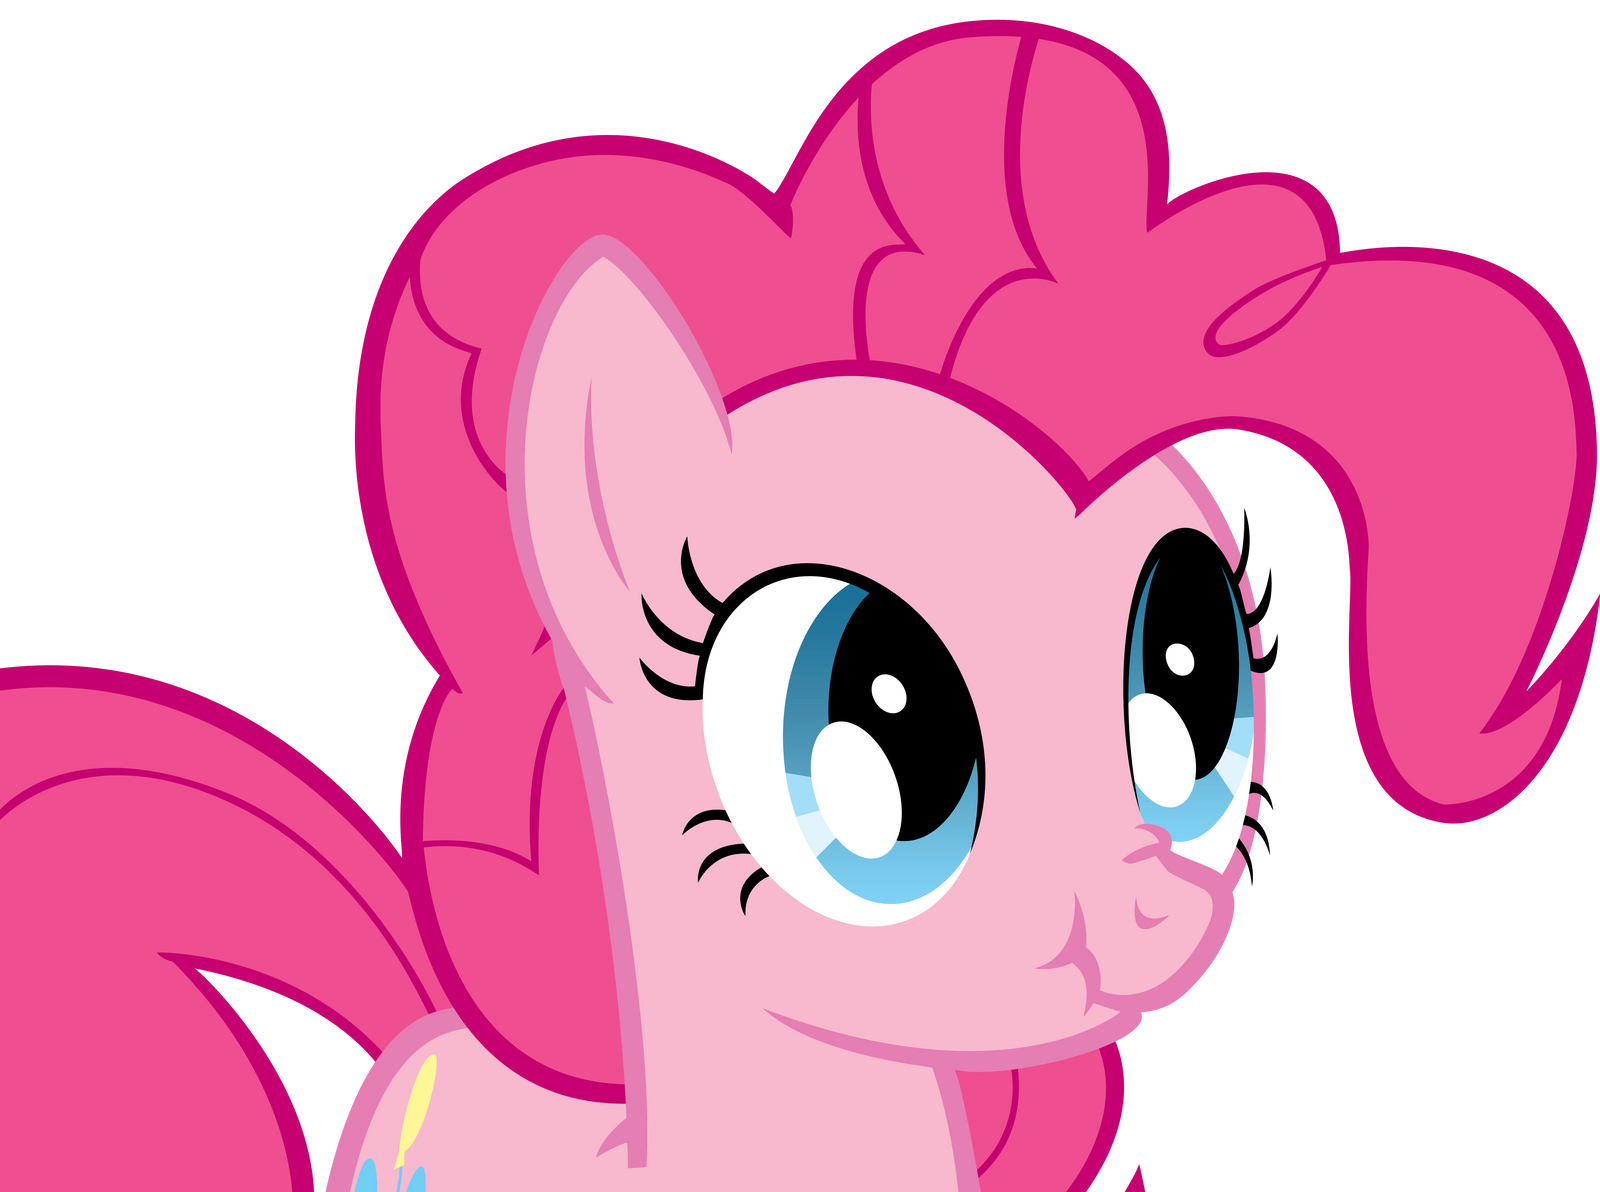 Pinkie Pie Scrunchy Face by Koeper